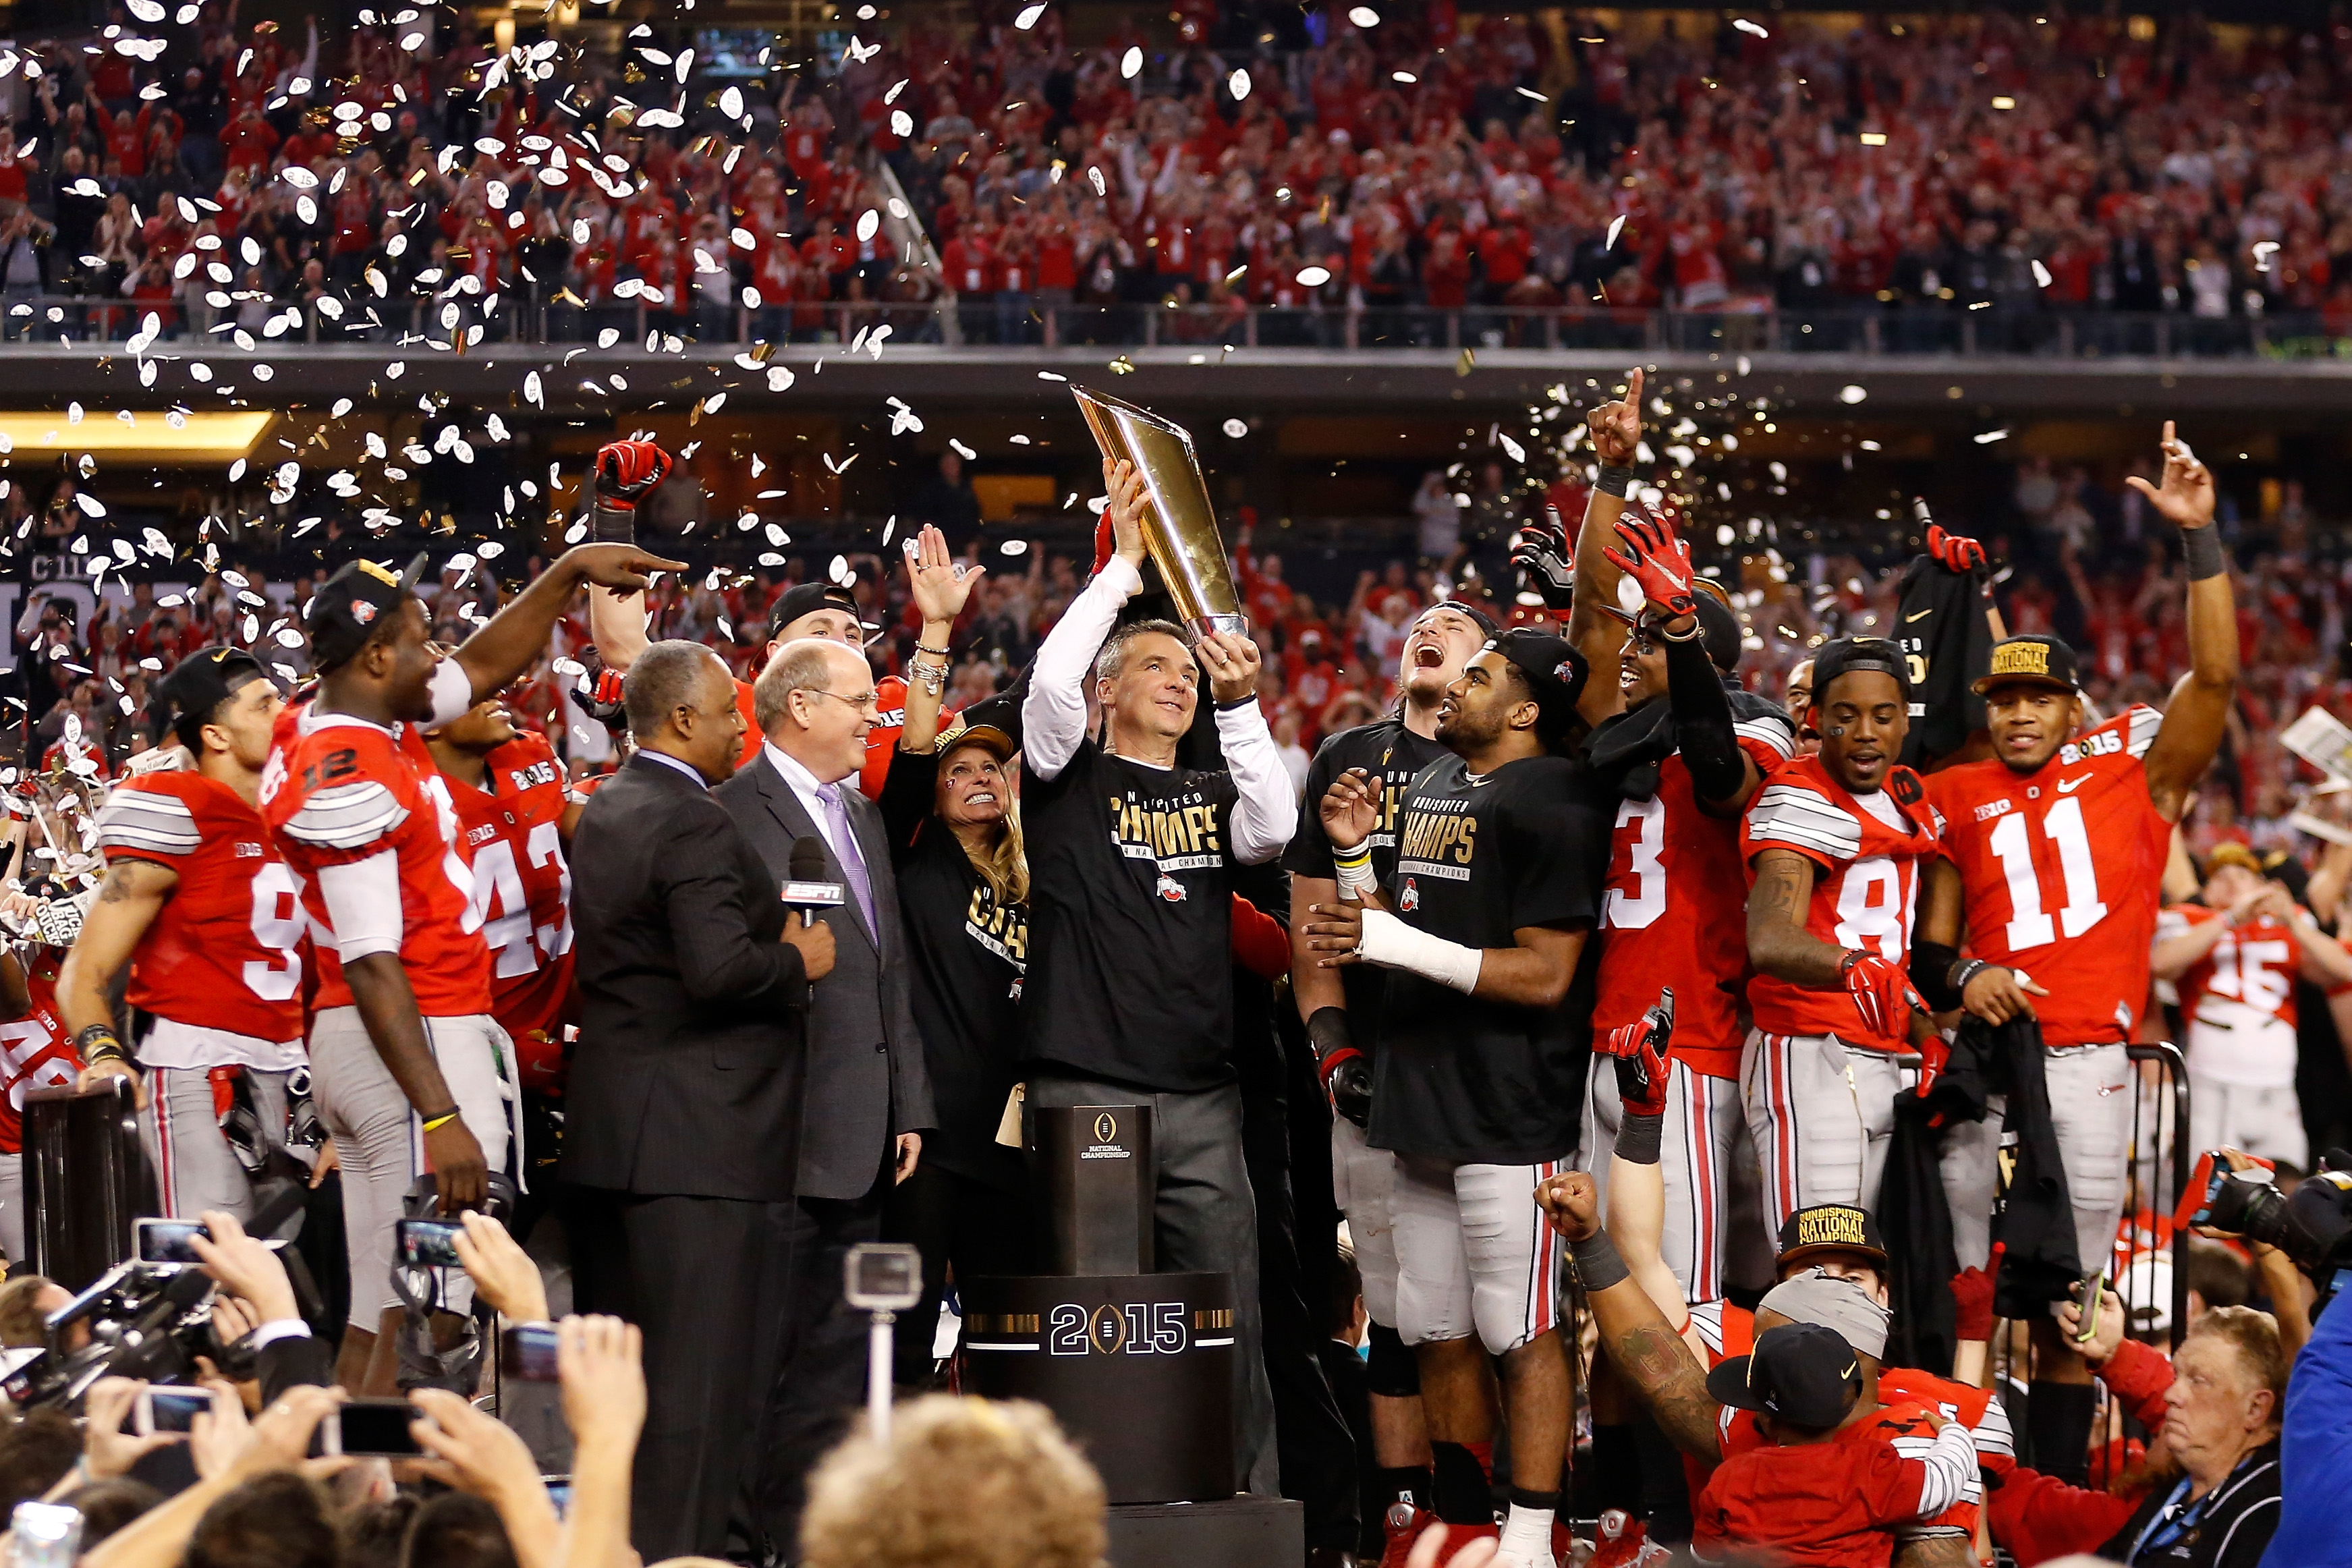 Ohio State wins college football's national championship - CBS News